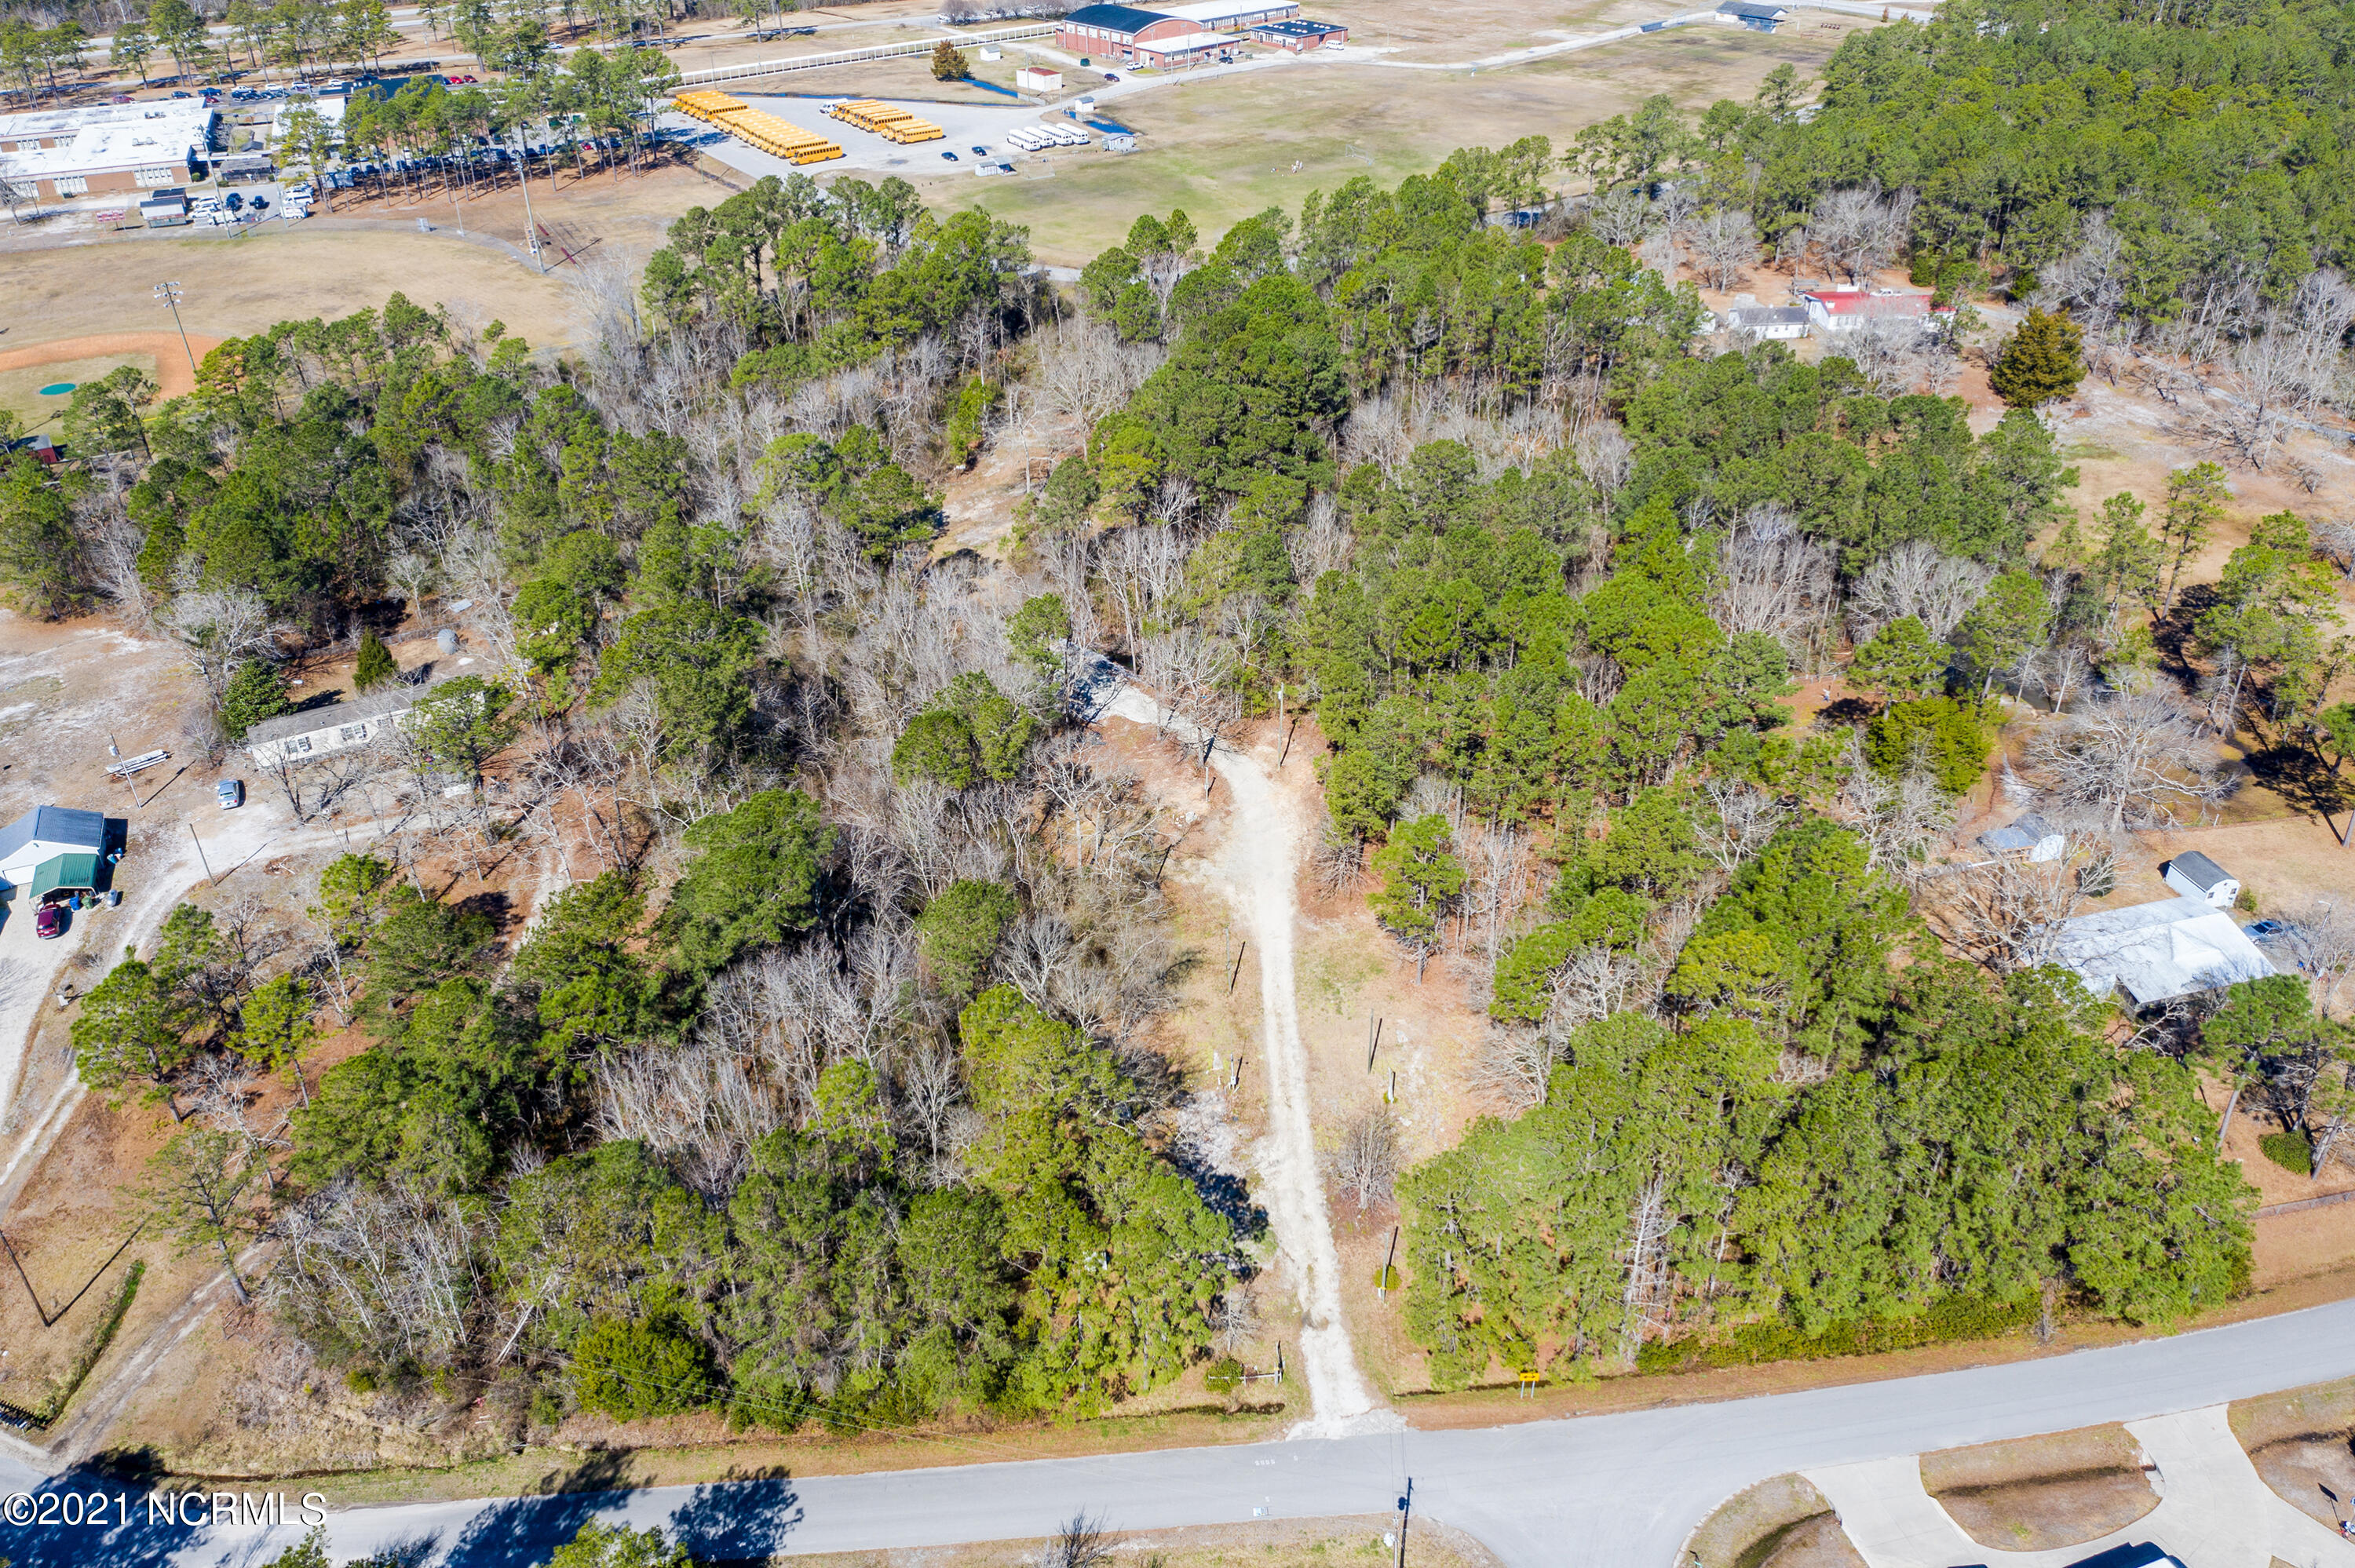 4.84 Acres situated on a quiet street right behind the Dixon High School.  Property has been cleared of old mobile homes and debris.  Septic permits uploaded and 5 water taps in place.